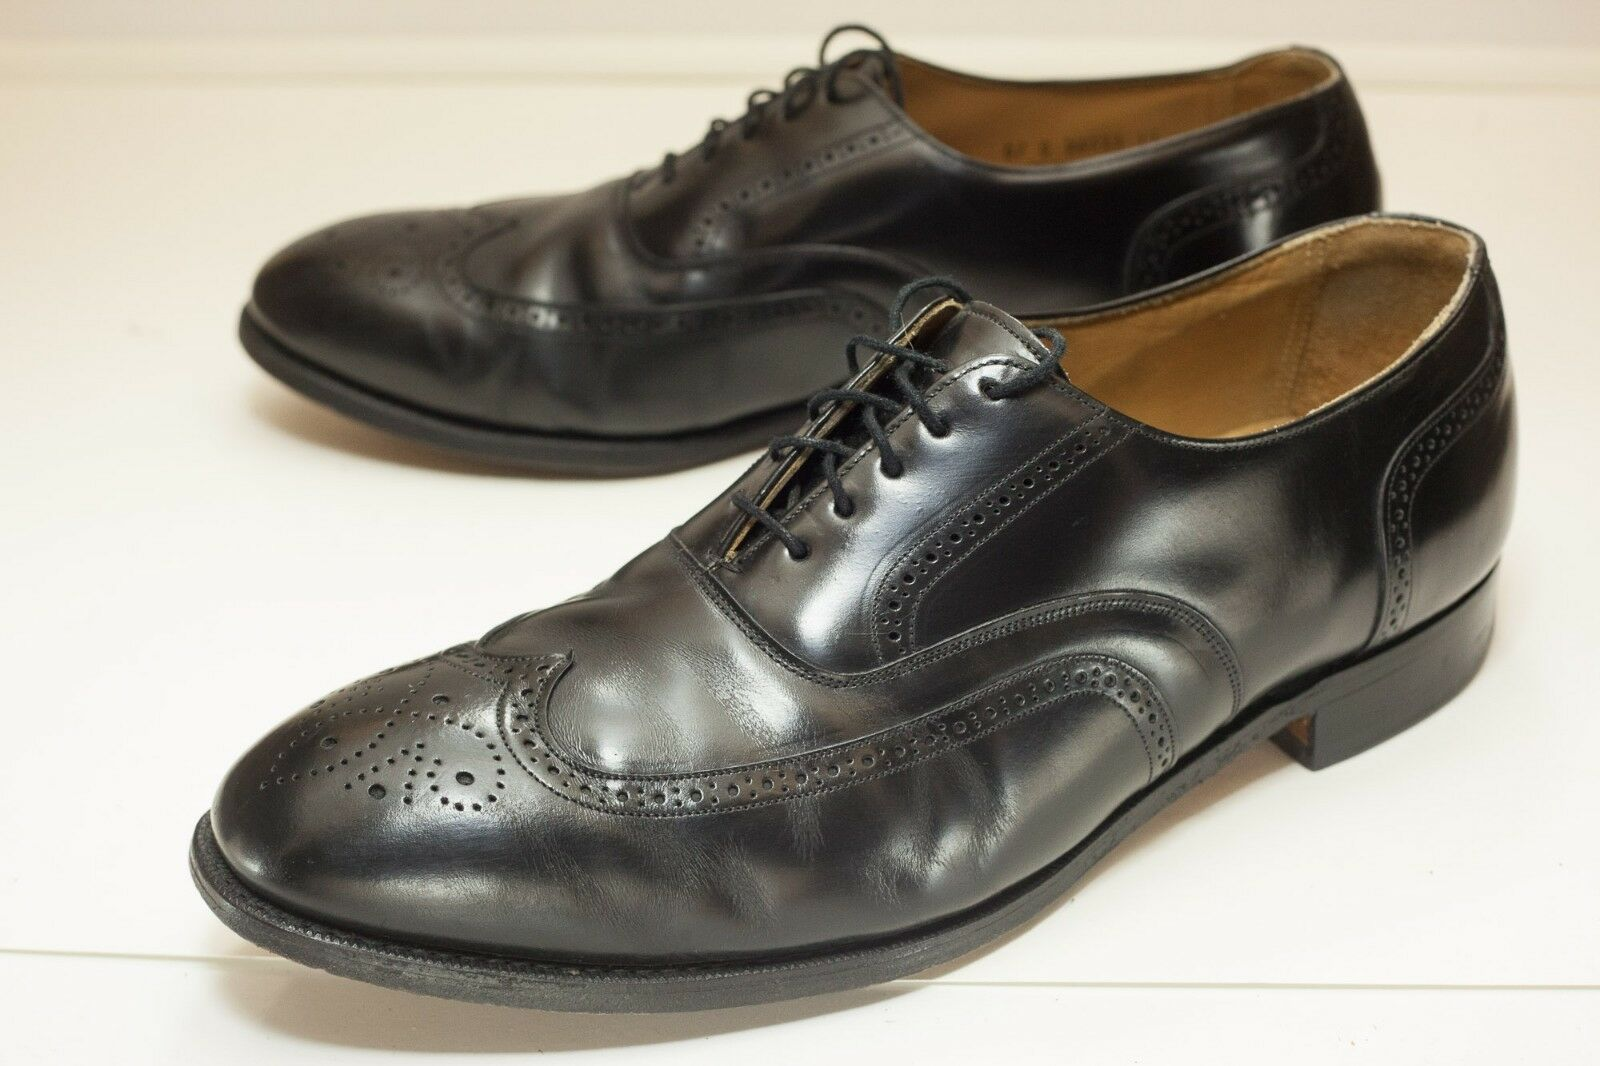 prezzo all'ingrosso Johnston & Murphy US 14 E C nero Wingtip Wingtip Wingtip Oxford Uomo Dress scarpe  forma unica